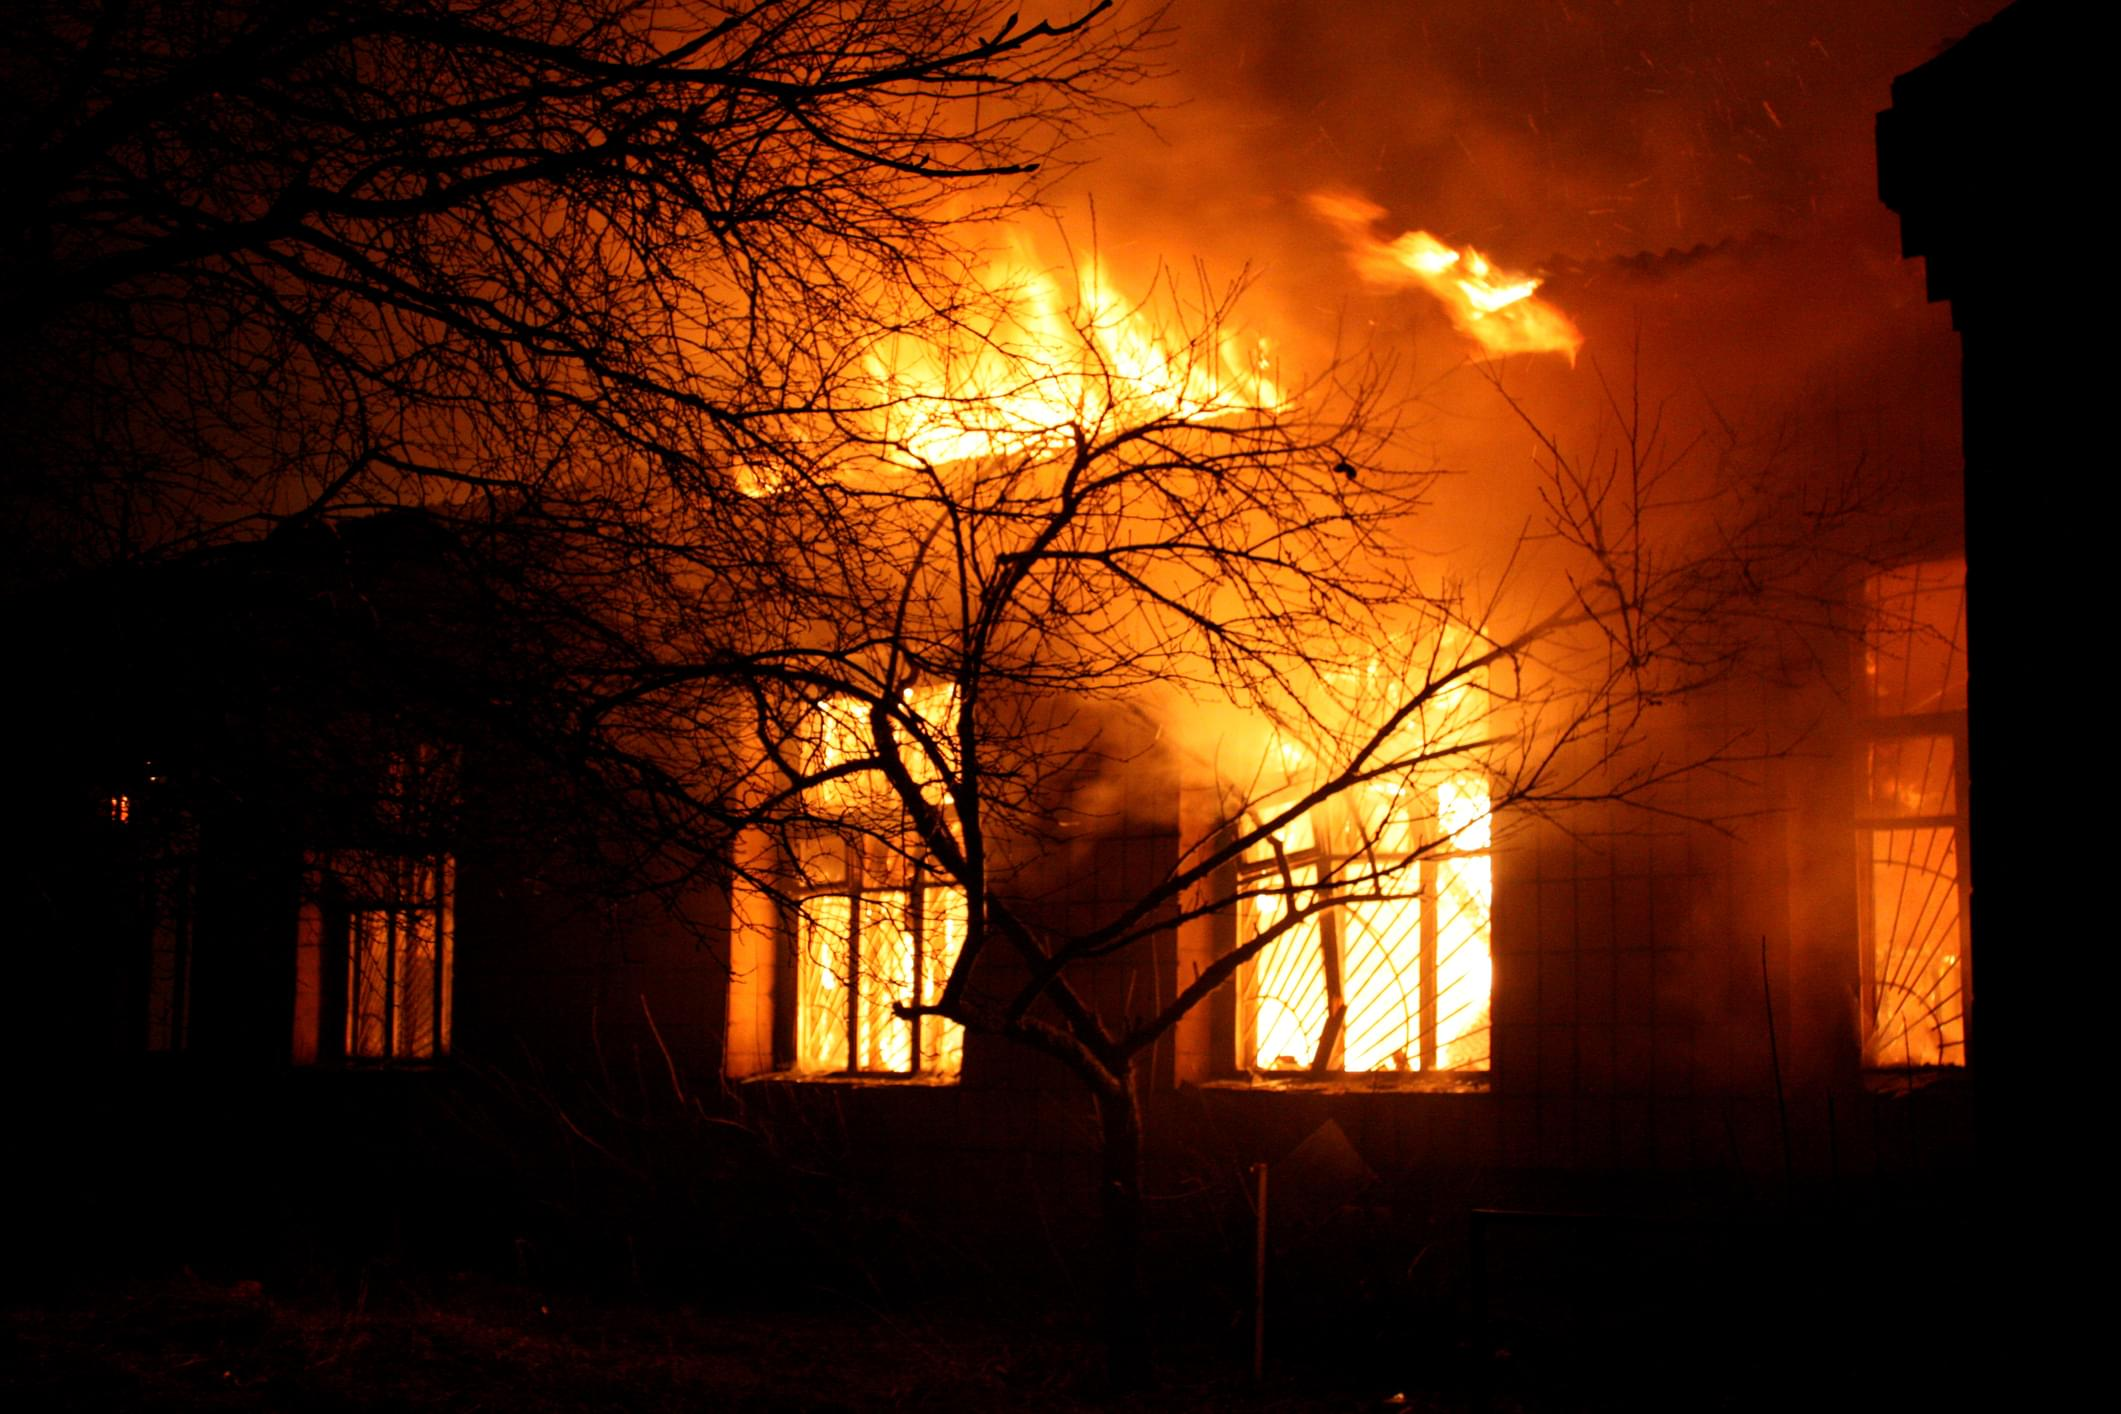 Monday, June 15: Dr. Ron Clark With A COVID-19 Update, David Ford on Police Search for Fotis Dulos Evidence, Massive Fire in Shelton